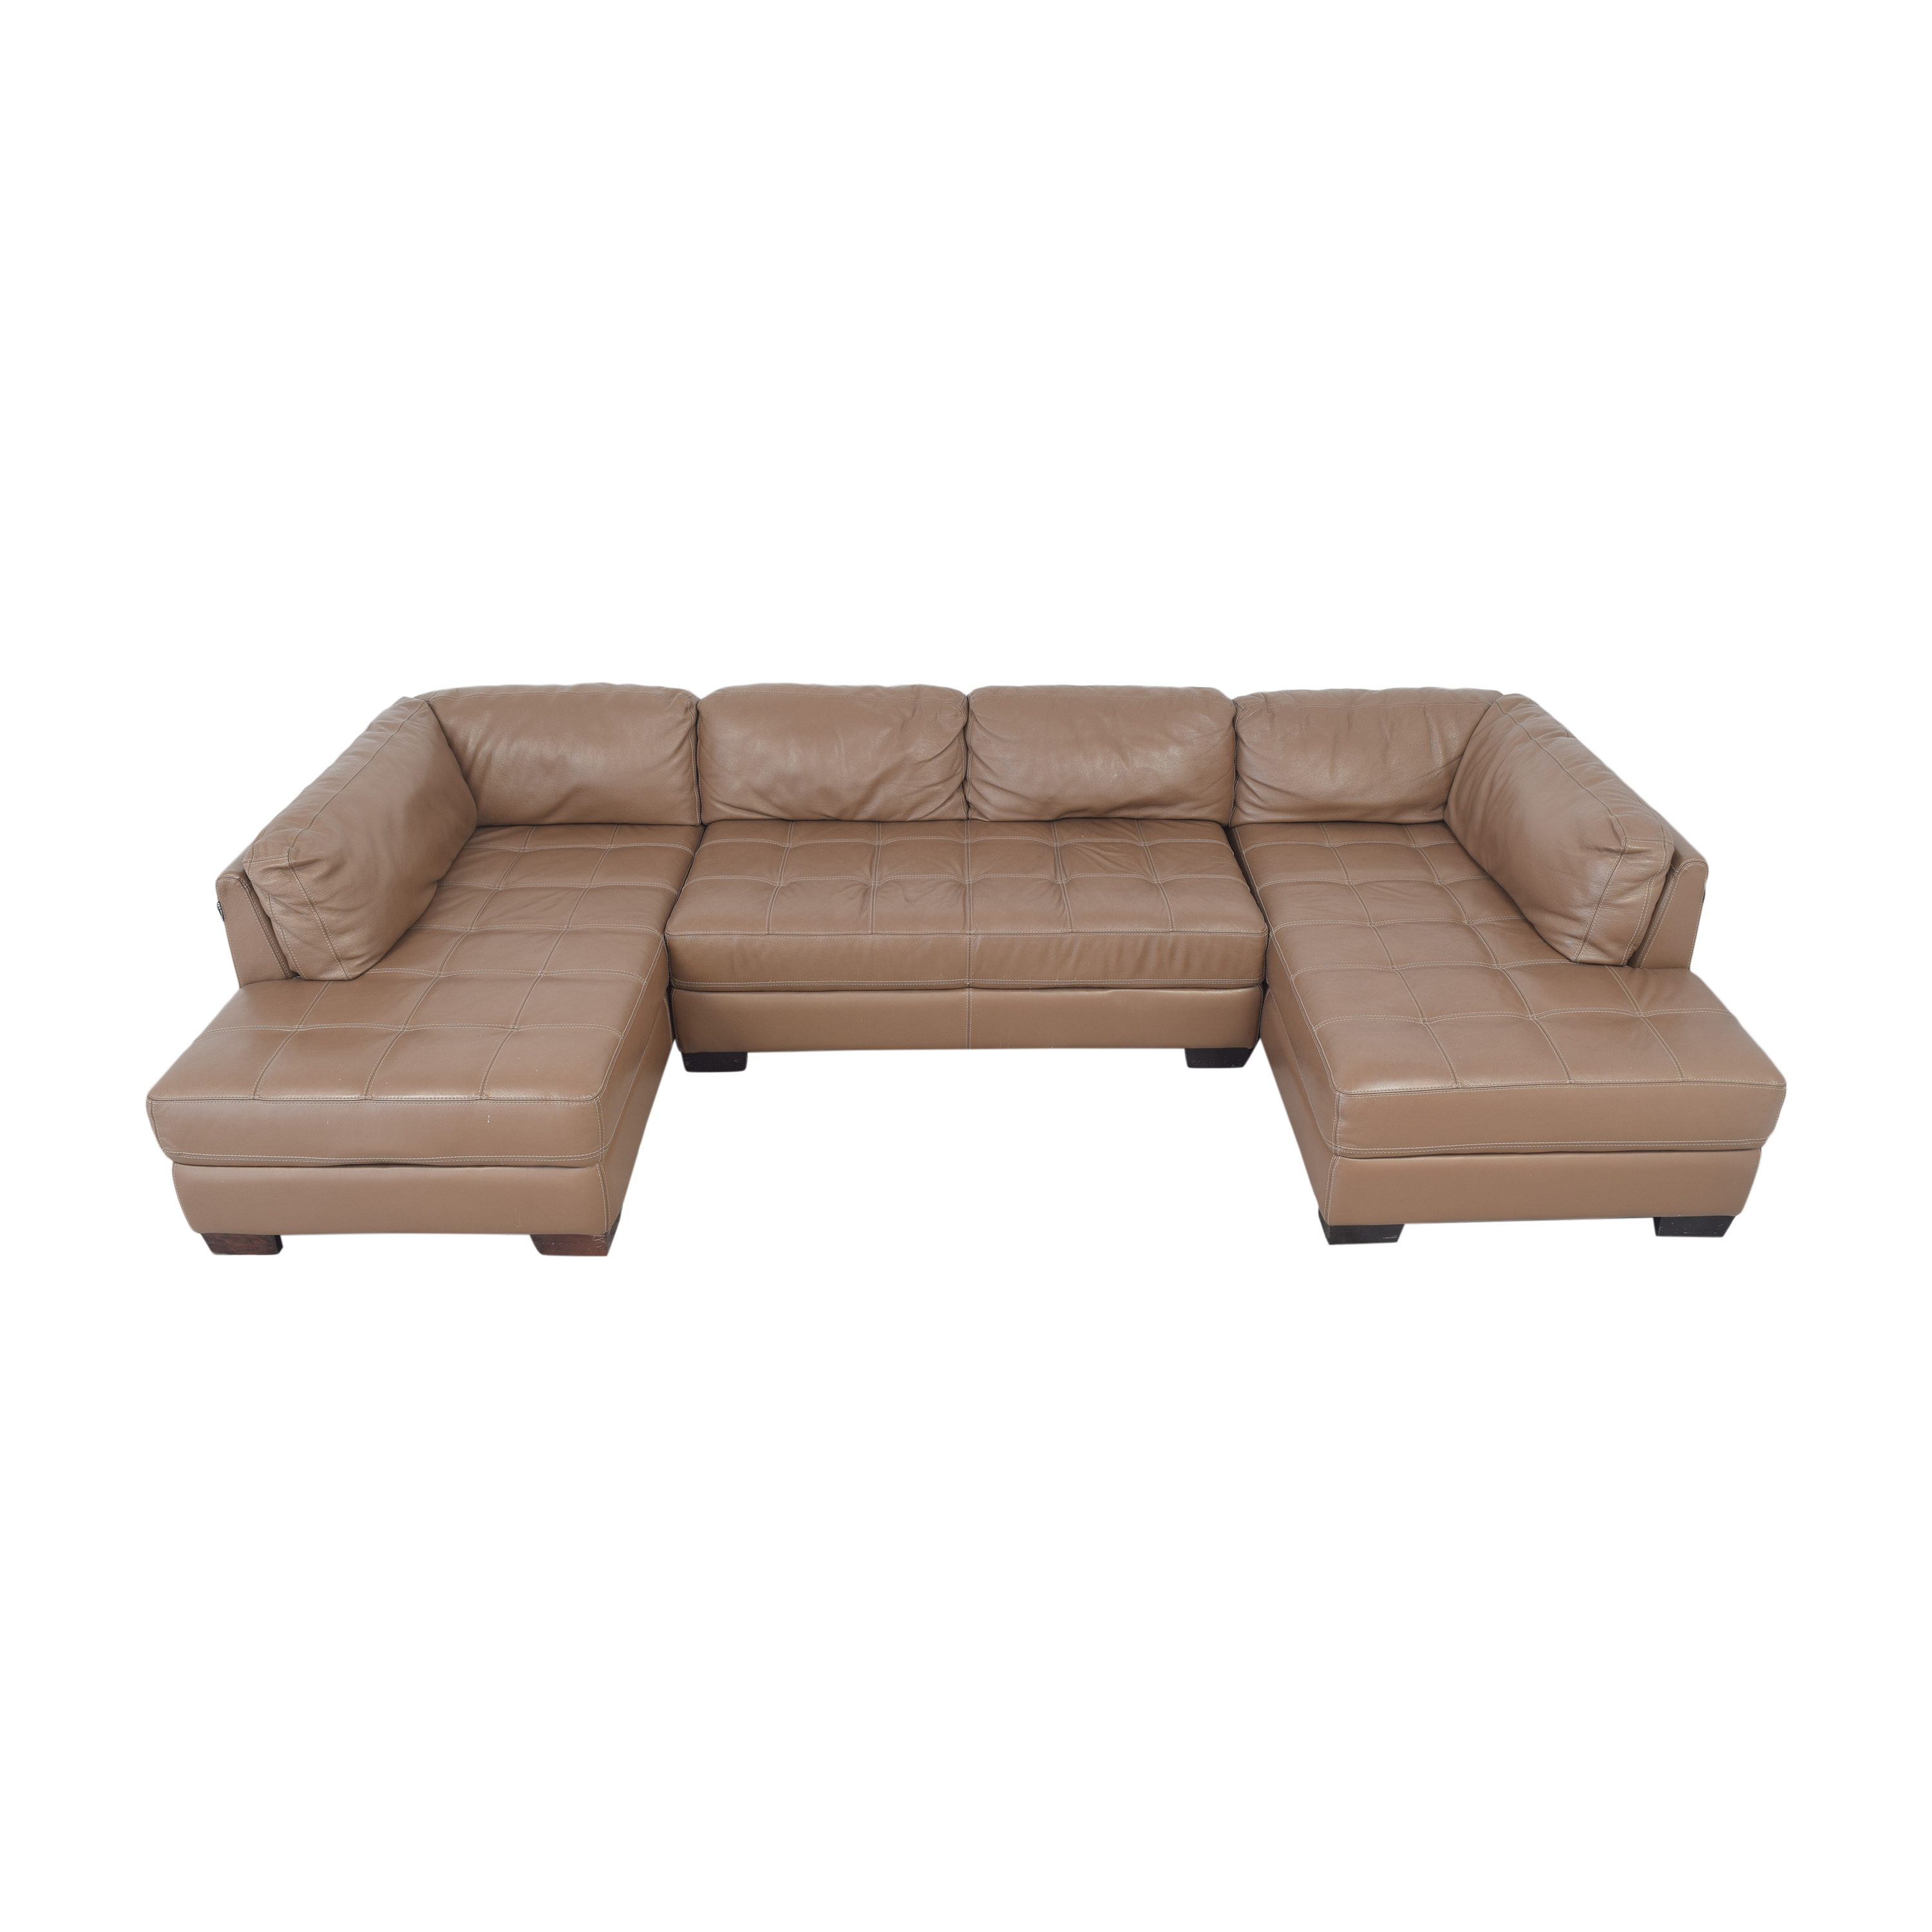 Chateau d'Ax Becker Sectional Sofa / Sectionals